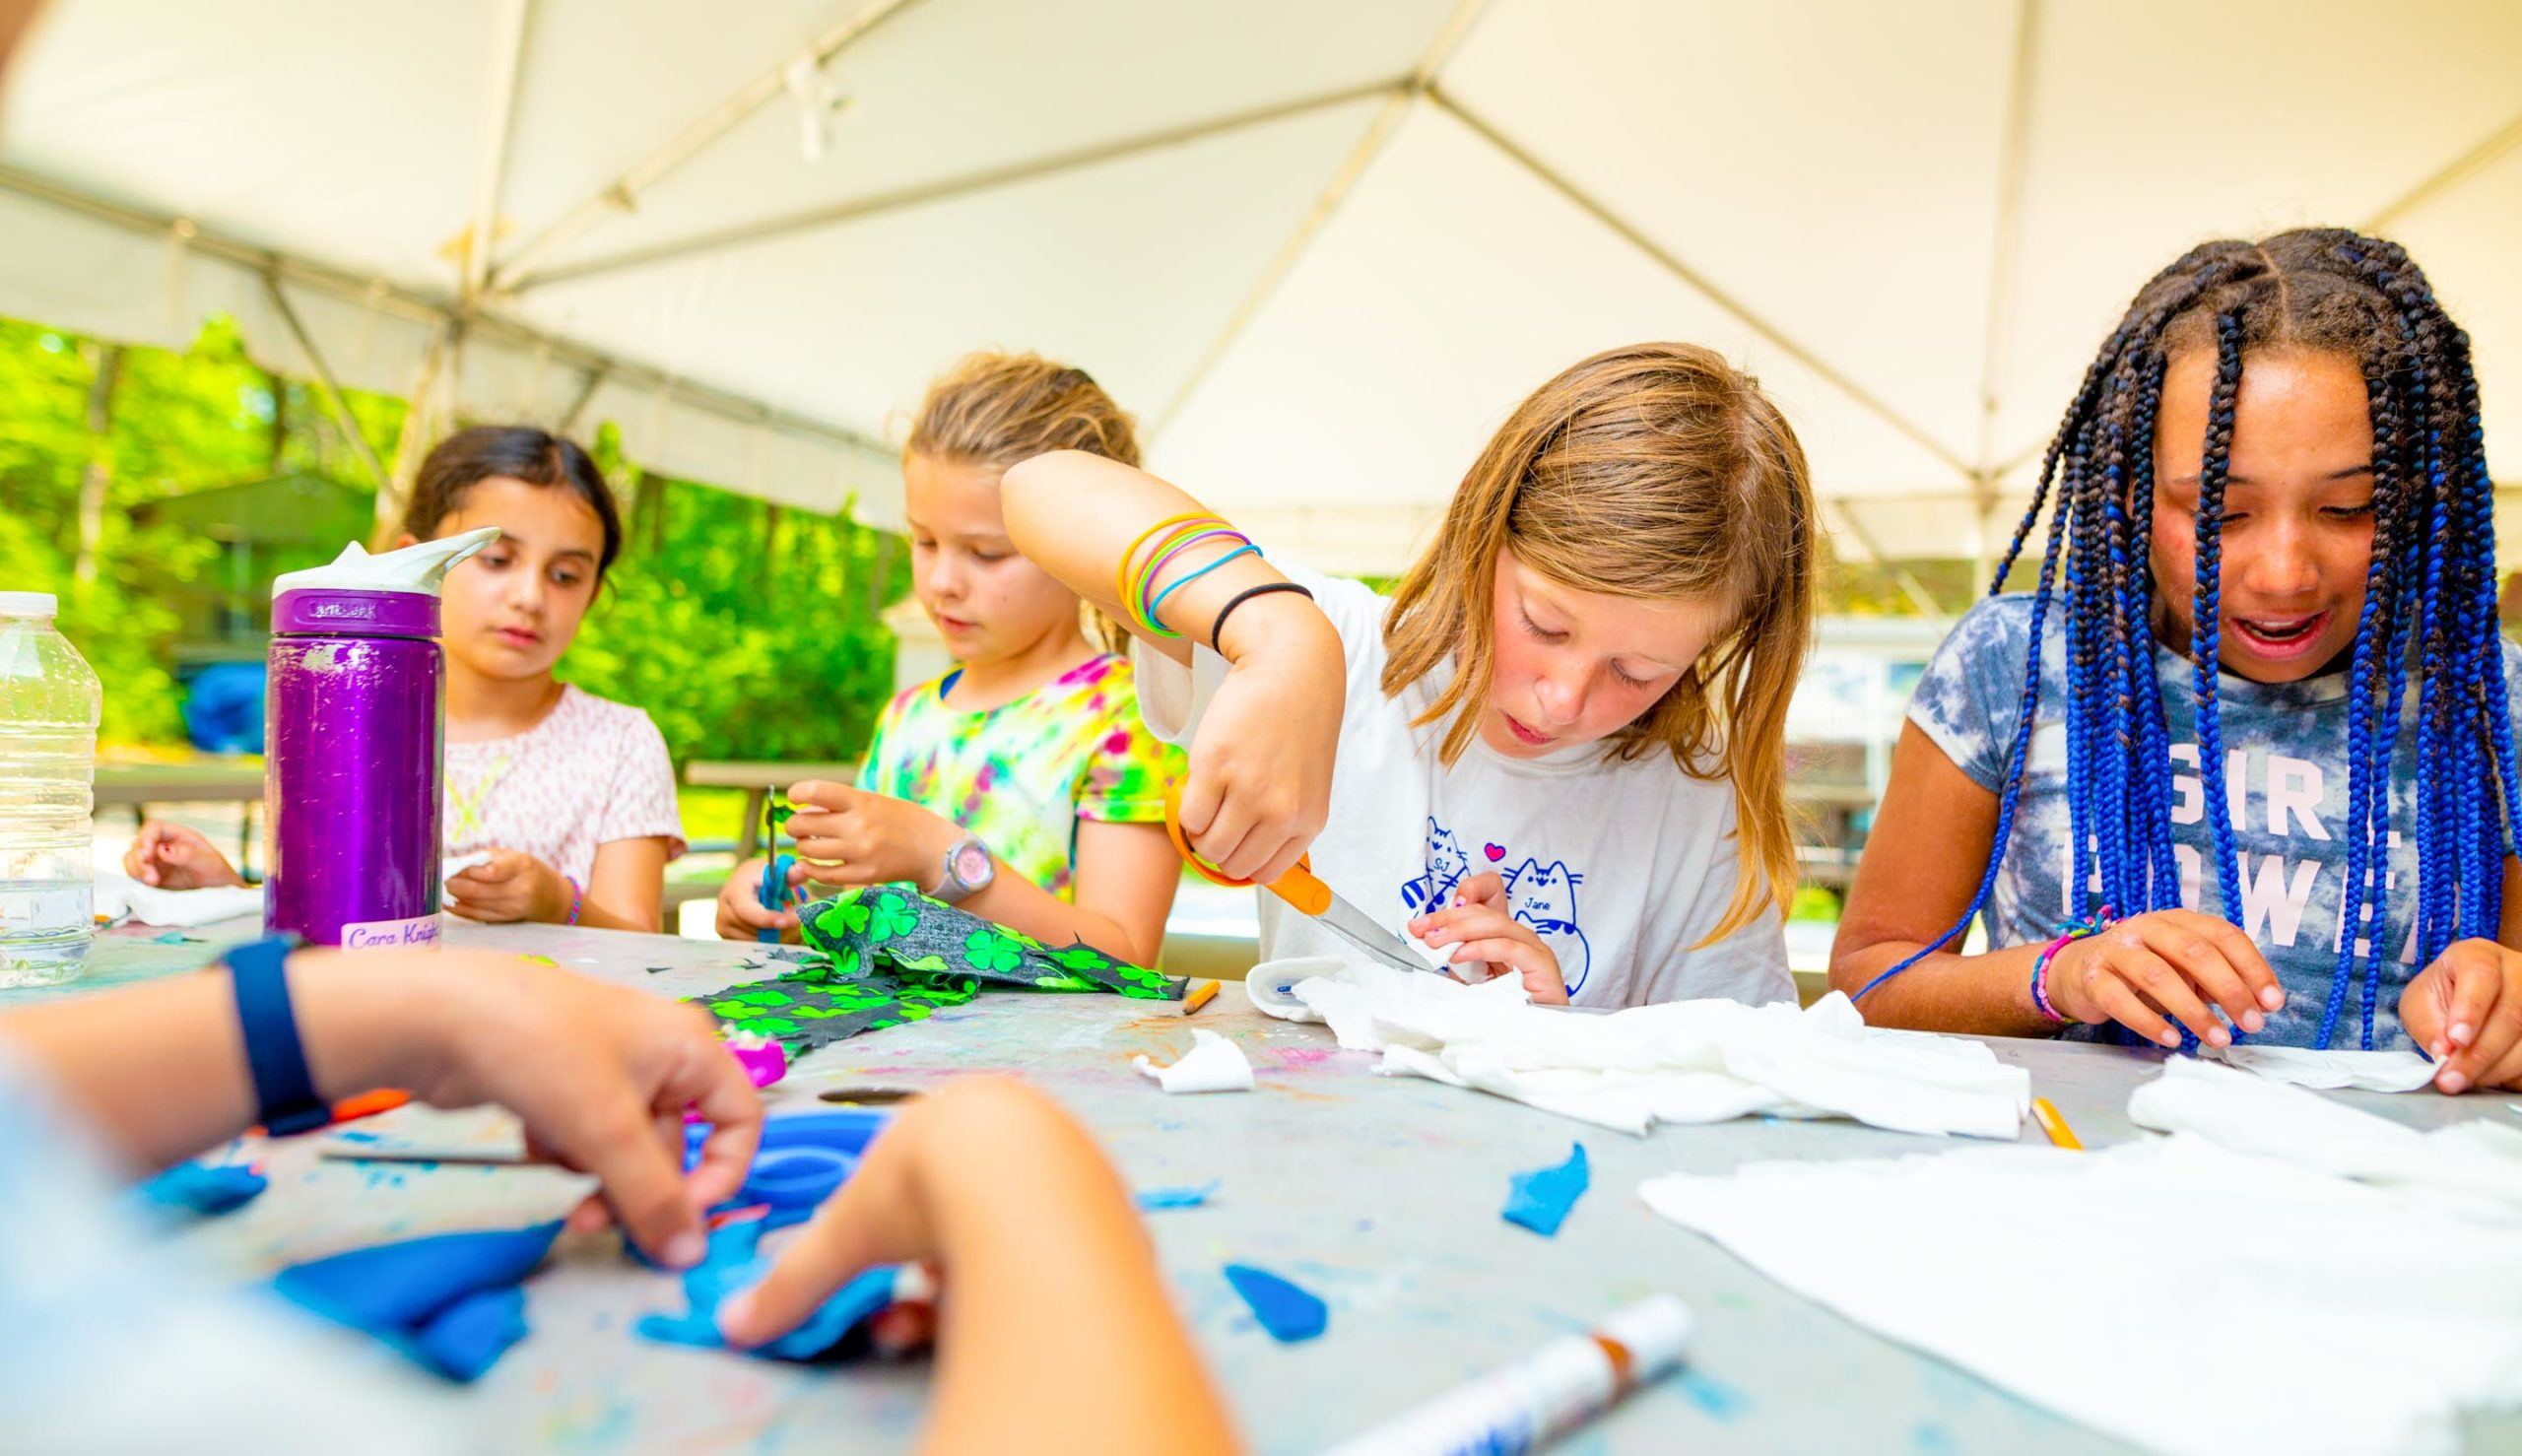 Campers doing crafts